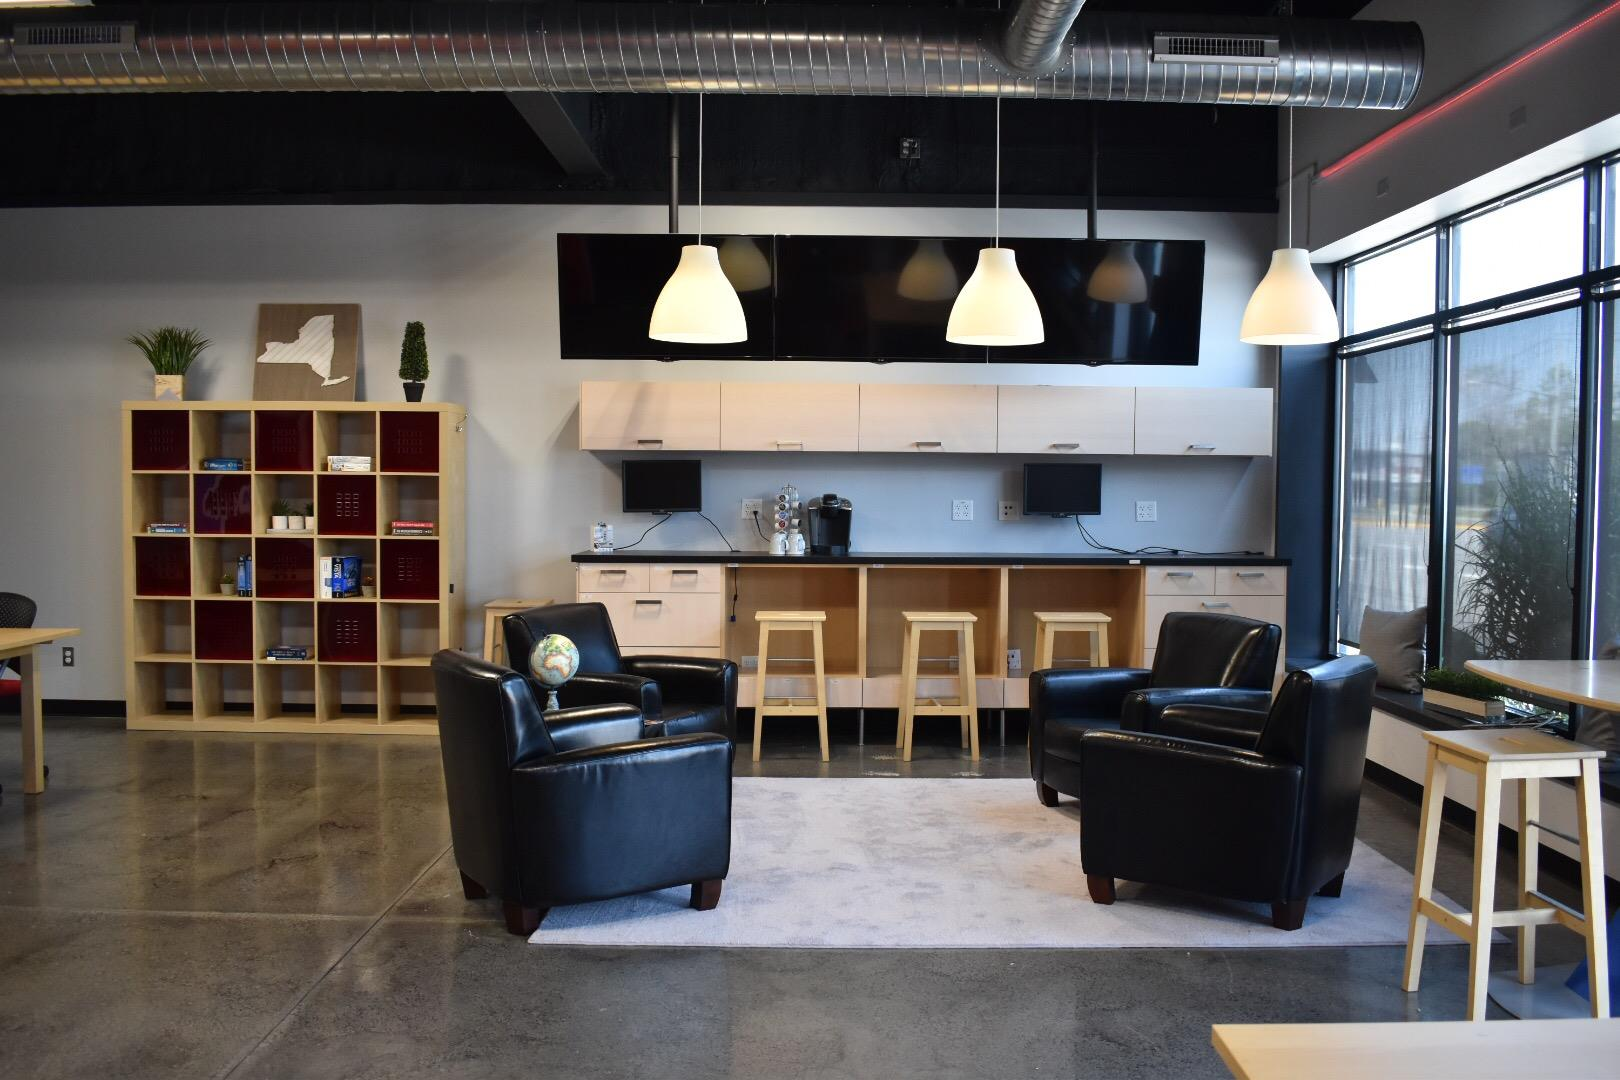 US itek, Inc. - Space to Rent - Shared Group Space